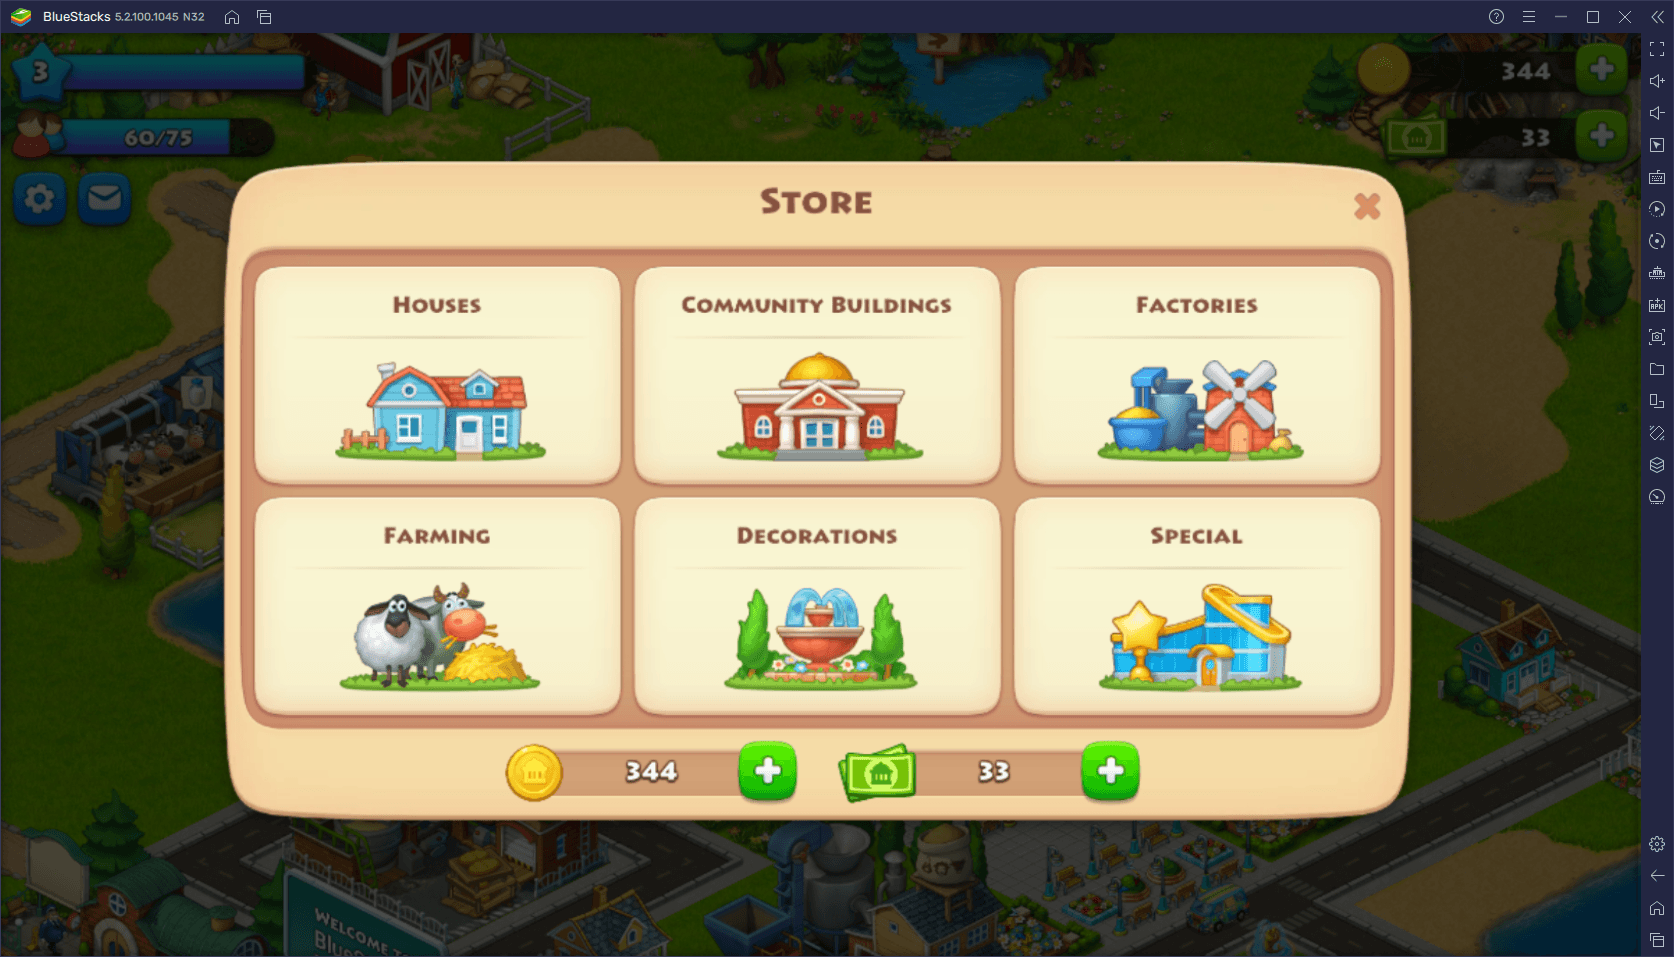 Beginner's Guide for Township – The Best Tips, Tricks, and Strategies for Newcomers